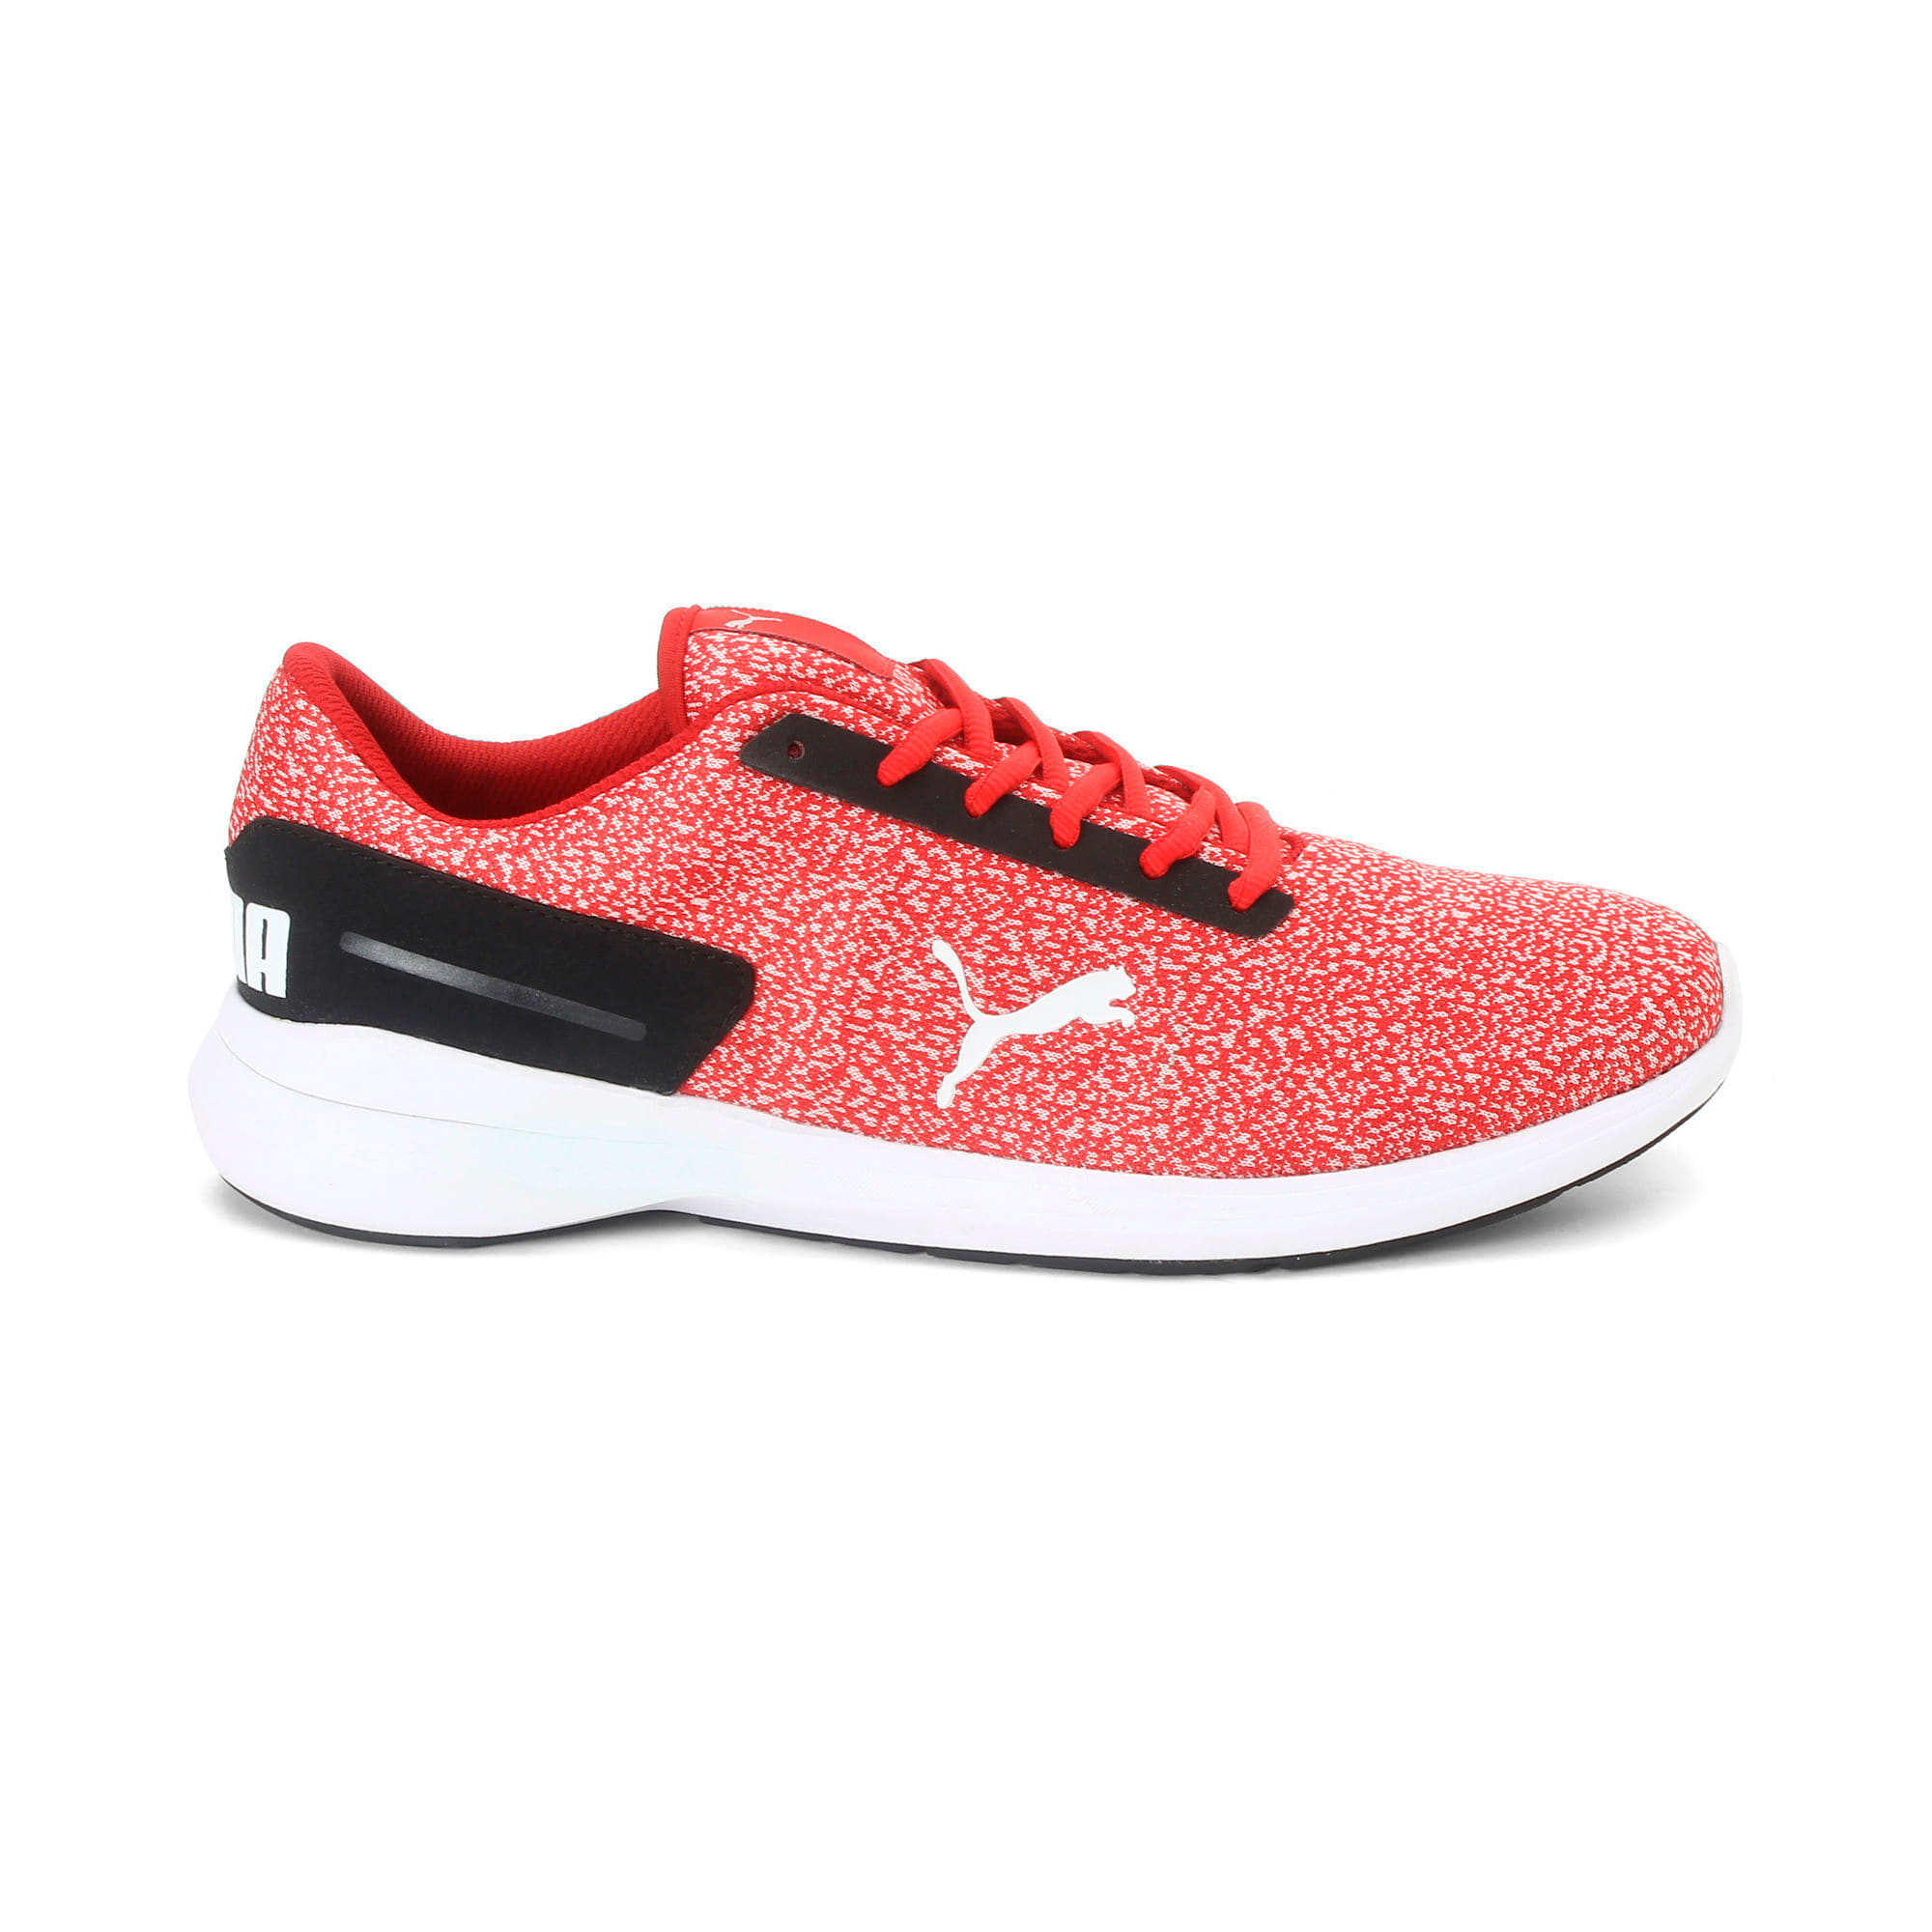 Thumbnail 4 of Pacer EL IDP Men's Sportstyle Shoes, Ribbon Red-Black- White, medium-IND